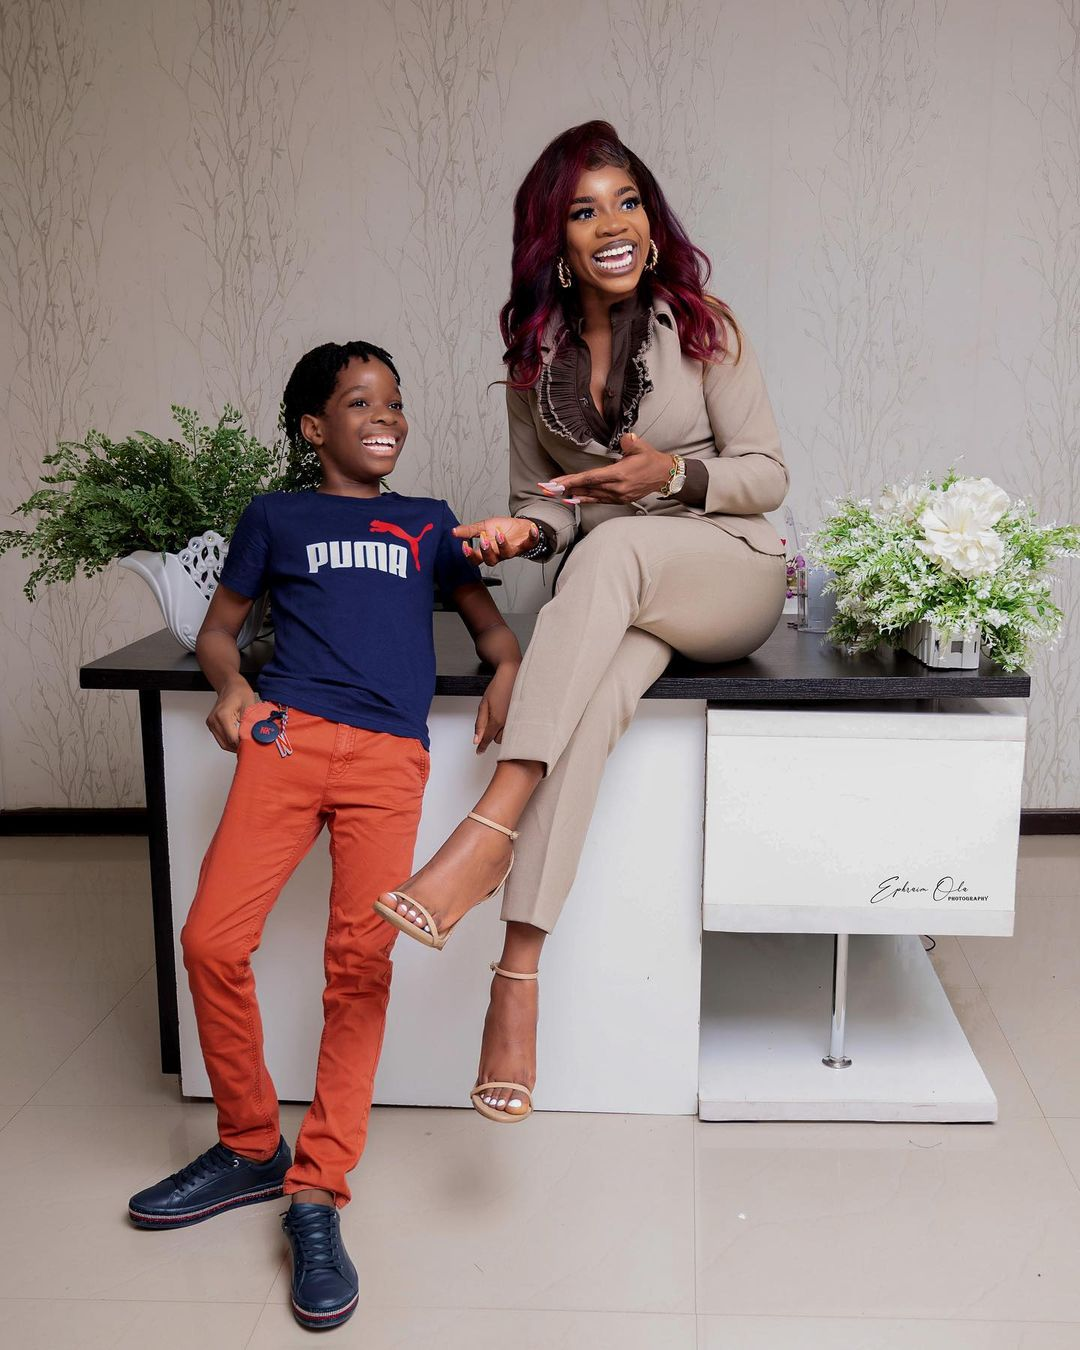 I've Done My Best As A Parent The Rest Of The Story Is For My Son To Share Wizkid's First Baby Mama Says As She Shares A Complicated Message